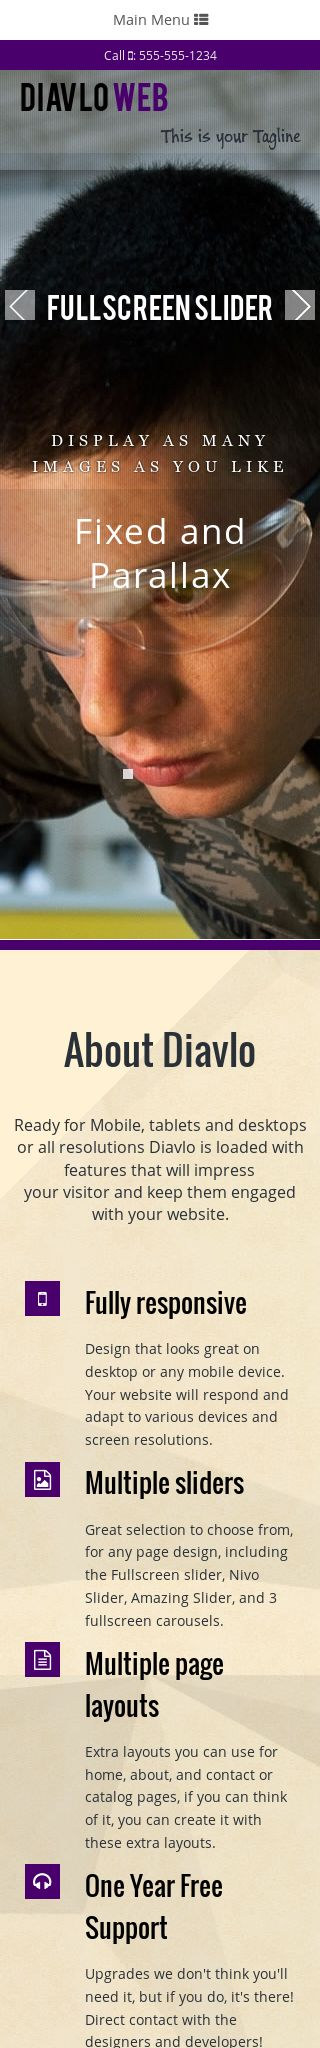 Mobile: Construction Web Template